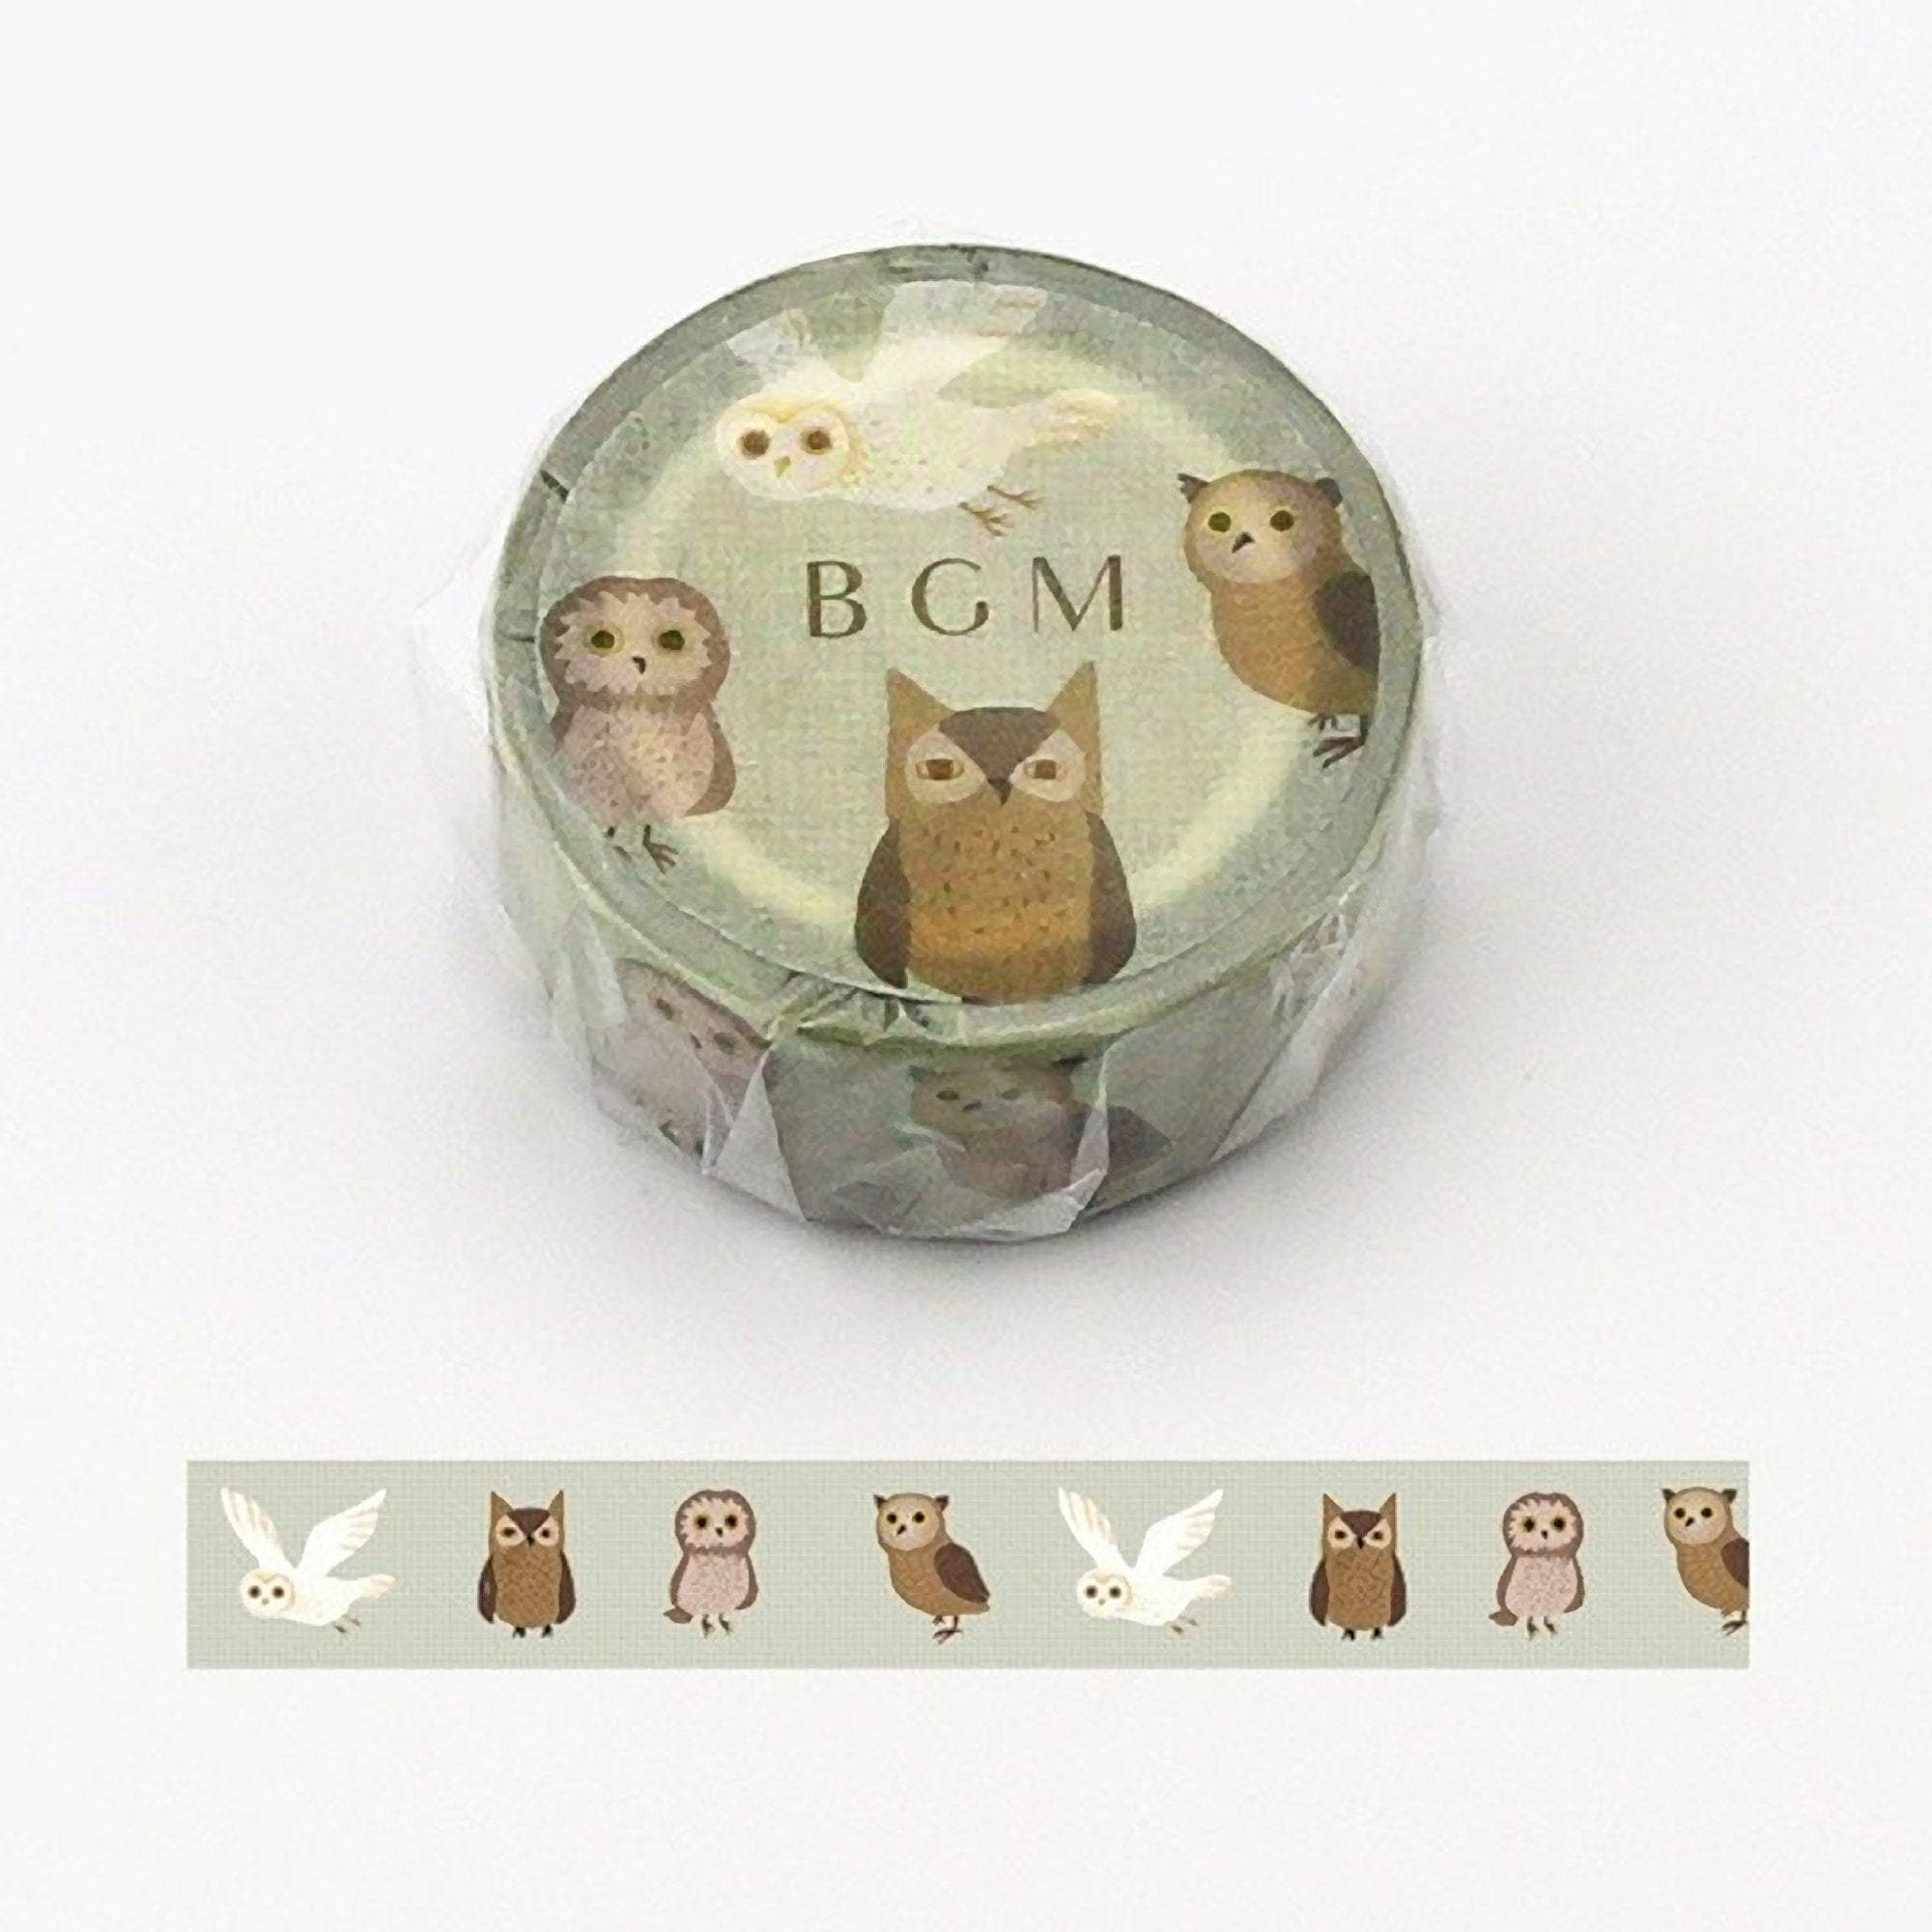 BGM Owl Washi Tape - The Stationery Life!